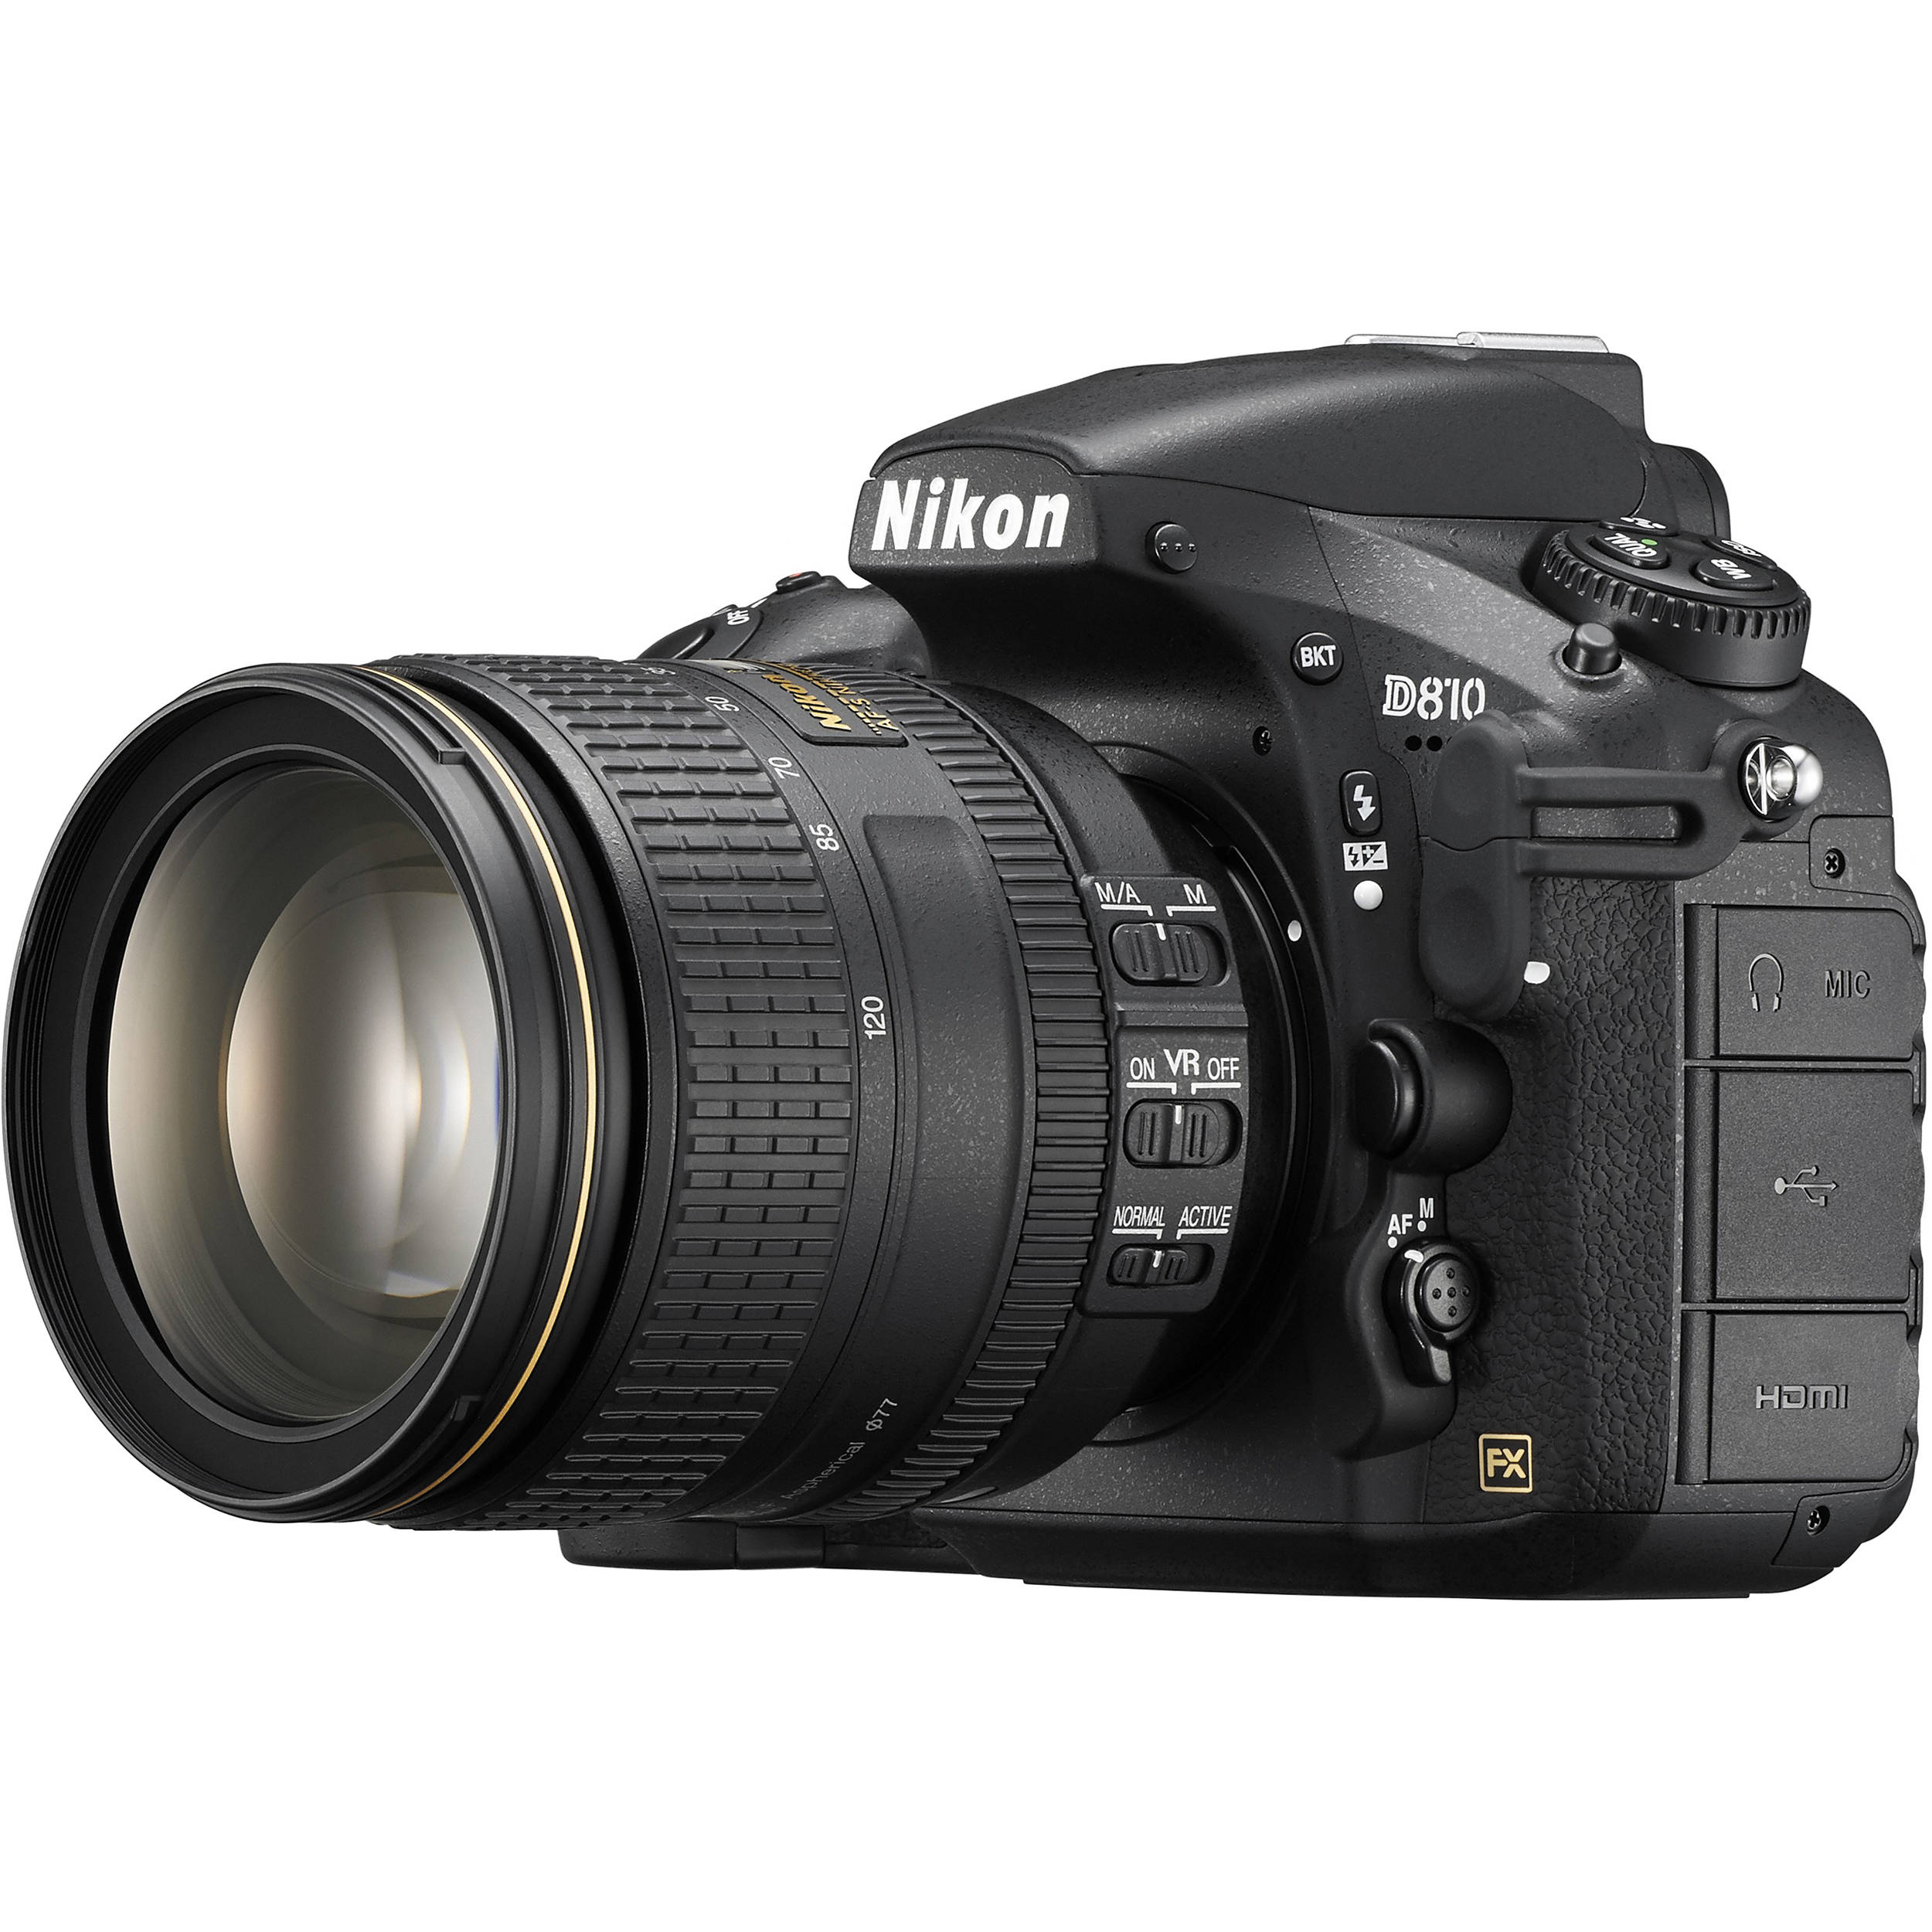 Nikon D810 DSLR Camera with 24120mm Lens 1556 Bamp;H Photo Video